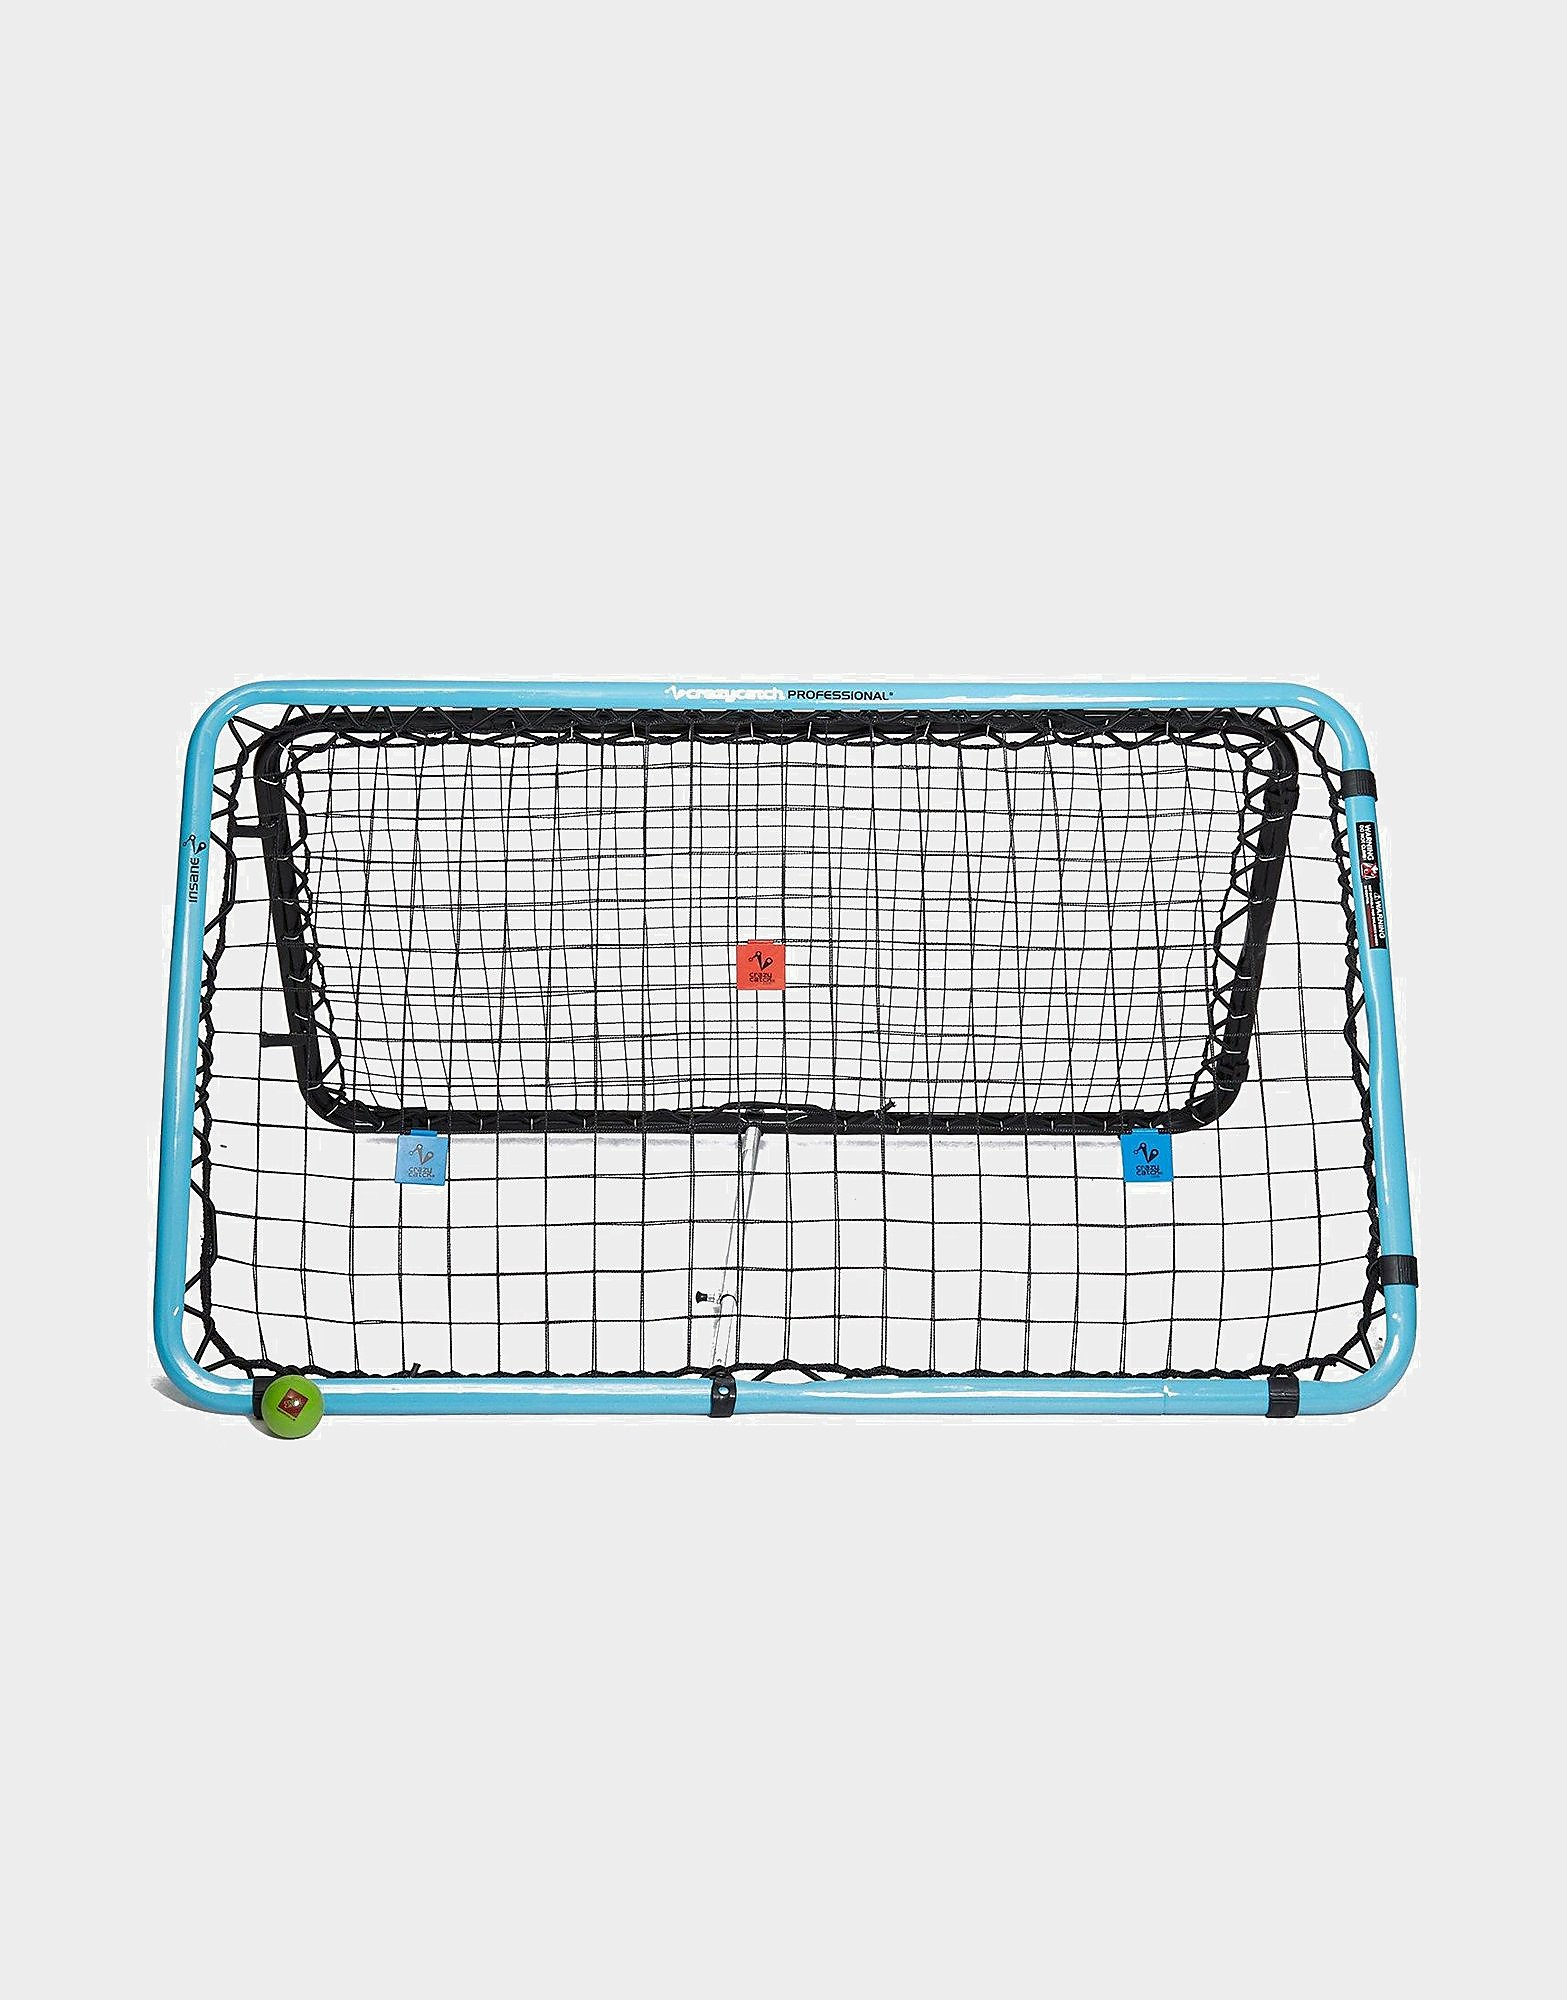 Crazy Catch Professional Classic Rebound Net